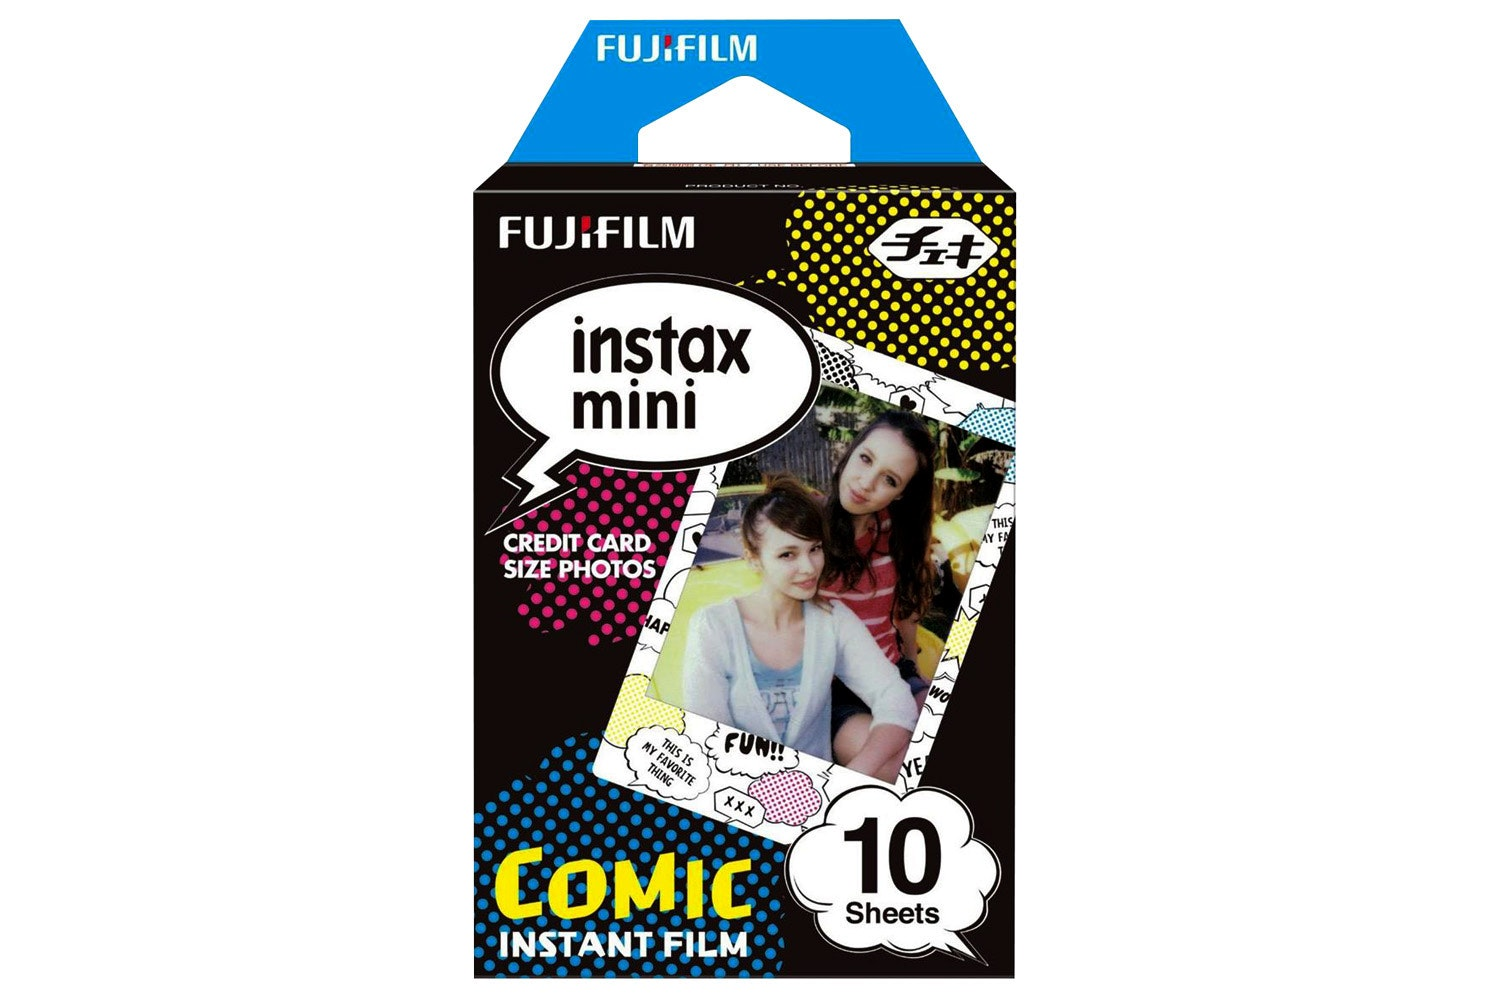 Fujifilm Instax Mini Film 10 Pack | Comic